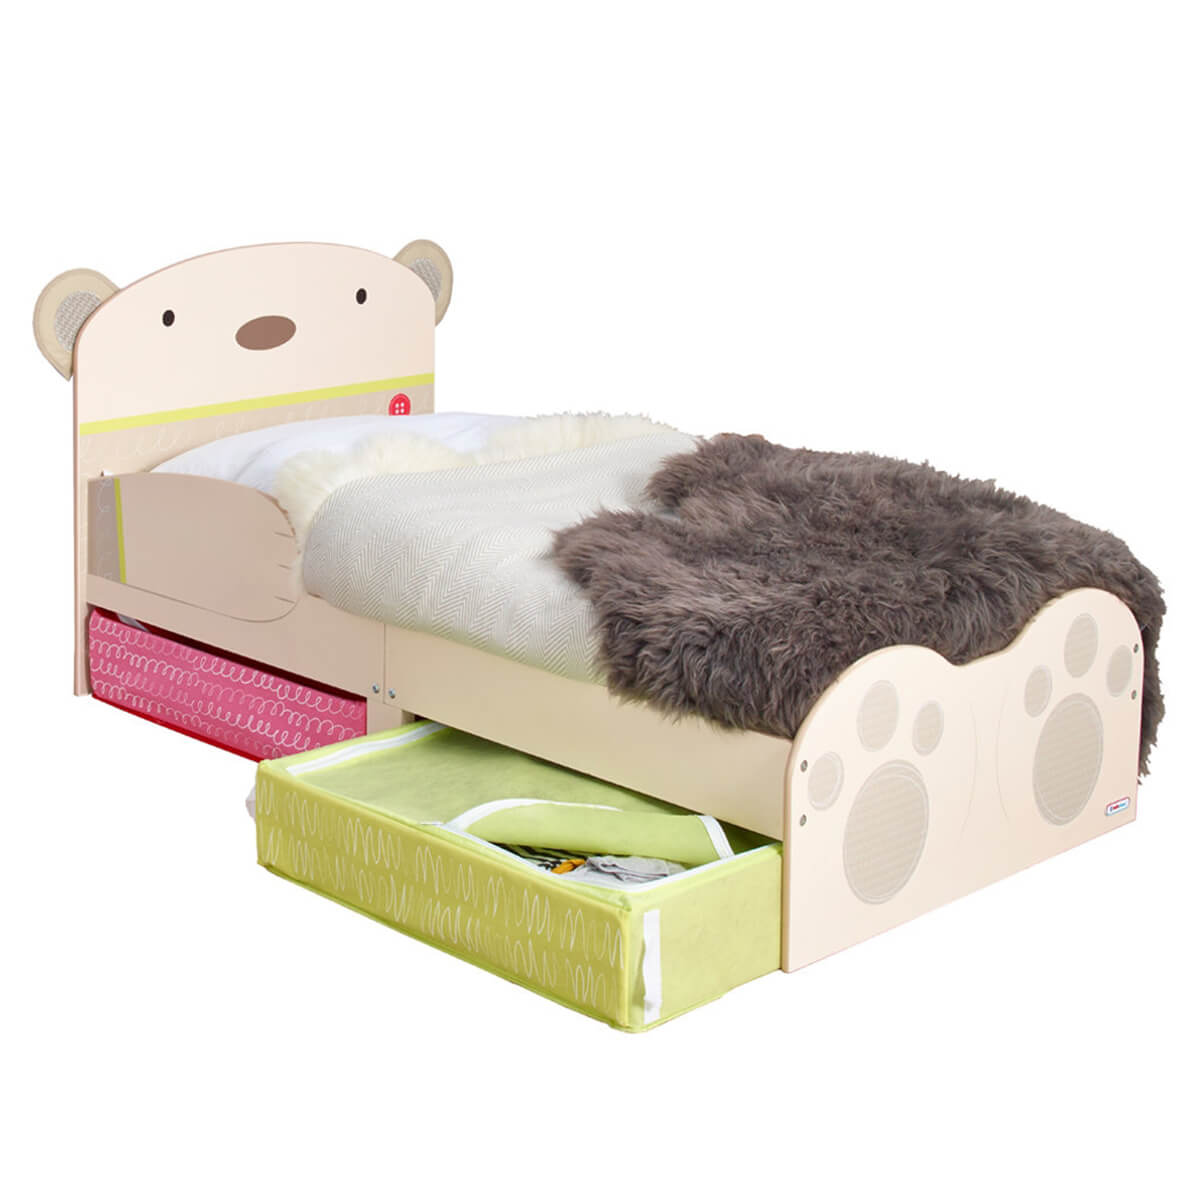 BabyBear Toddler Bed With Underbed Storage  sc 1 st  FADS & Baby Bear Toddler Bed with Storage | FREE DELIVERY | FADS